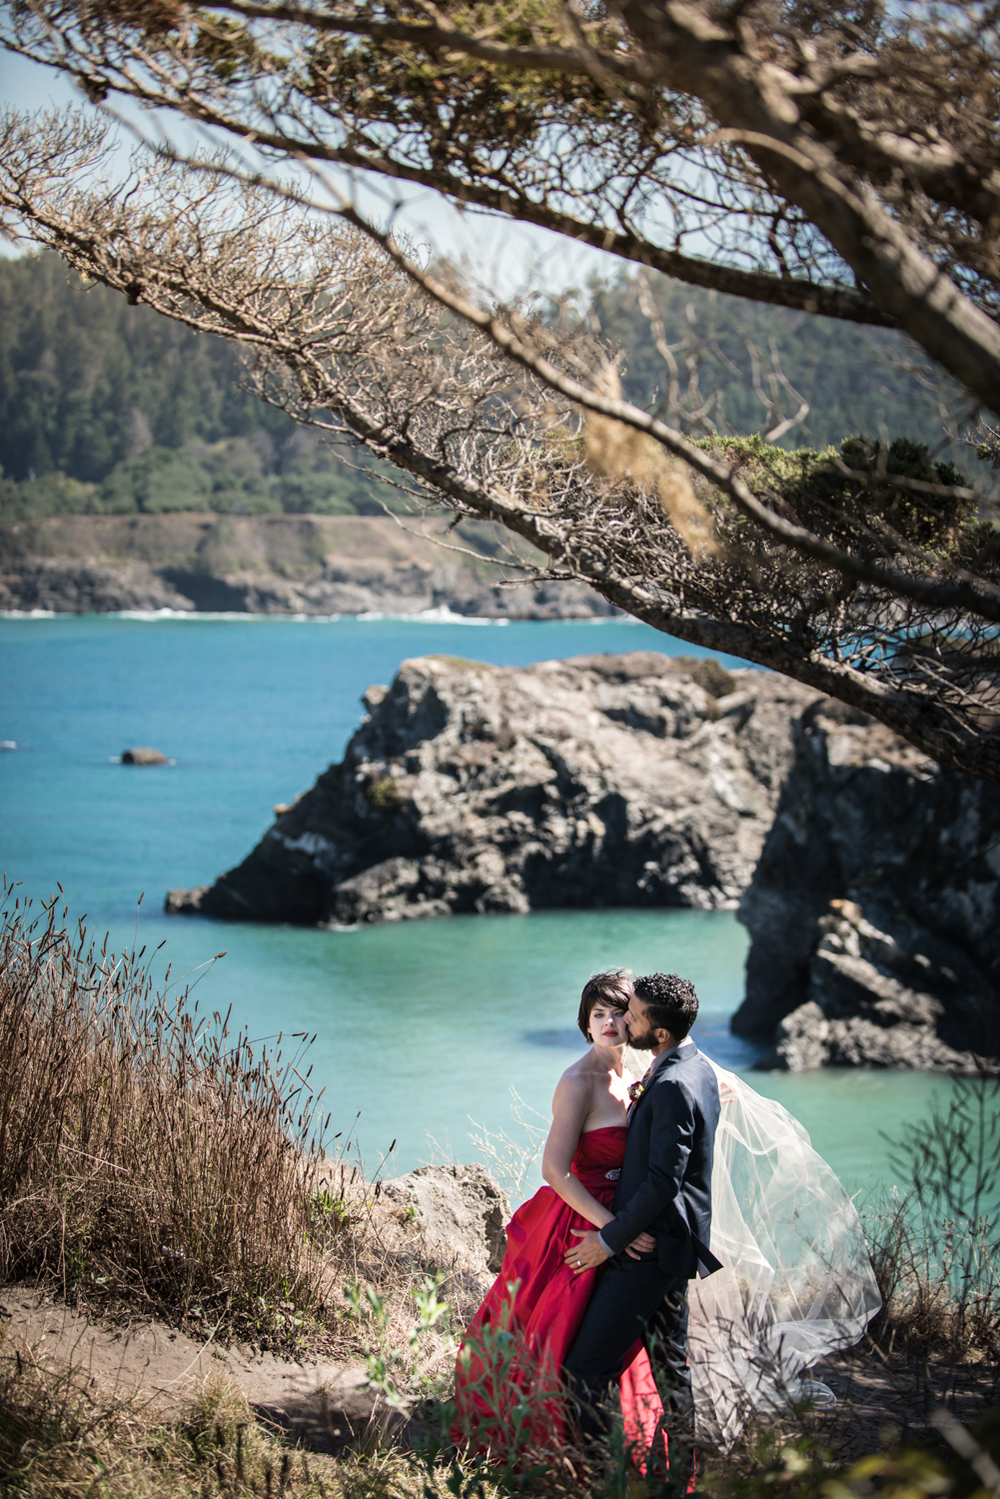 mendocino_redweddingdress_realwedding_couple